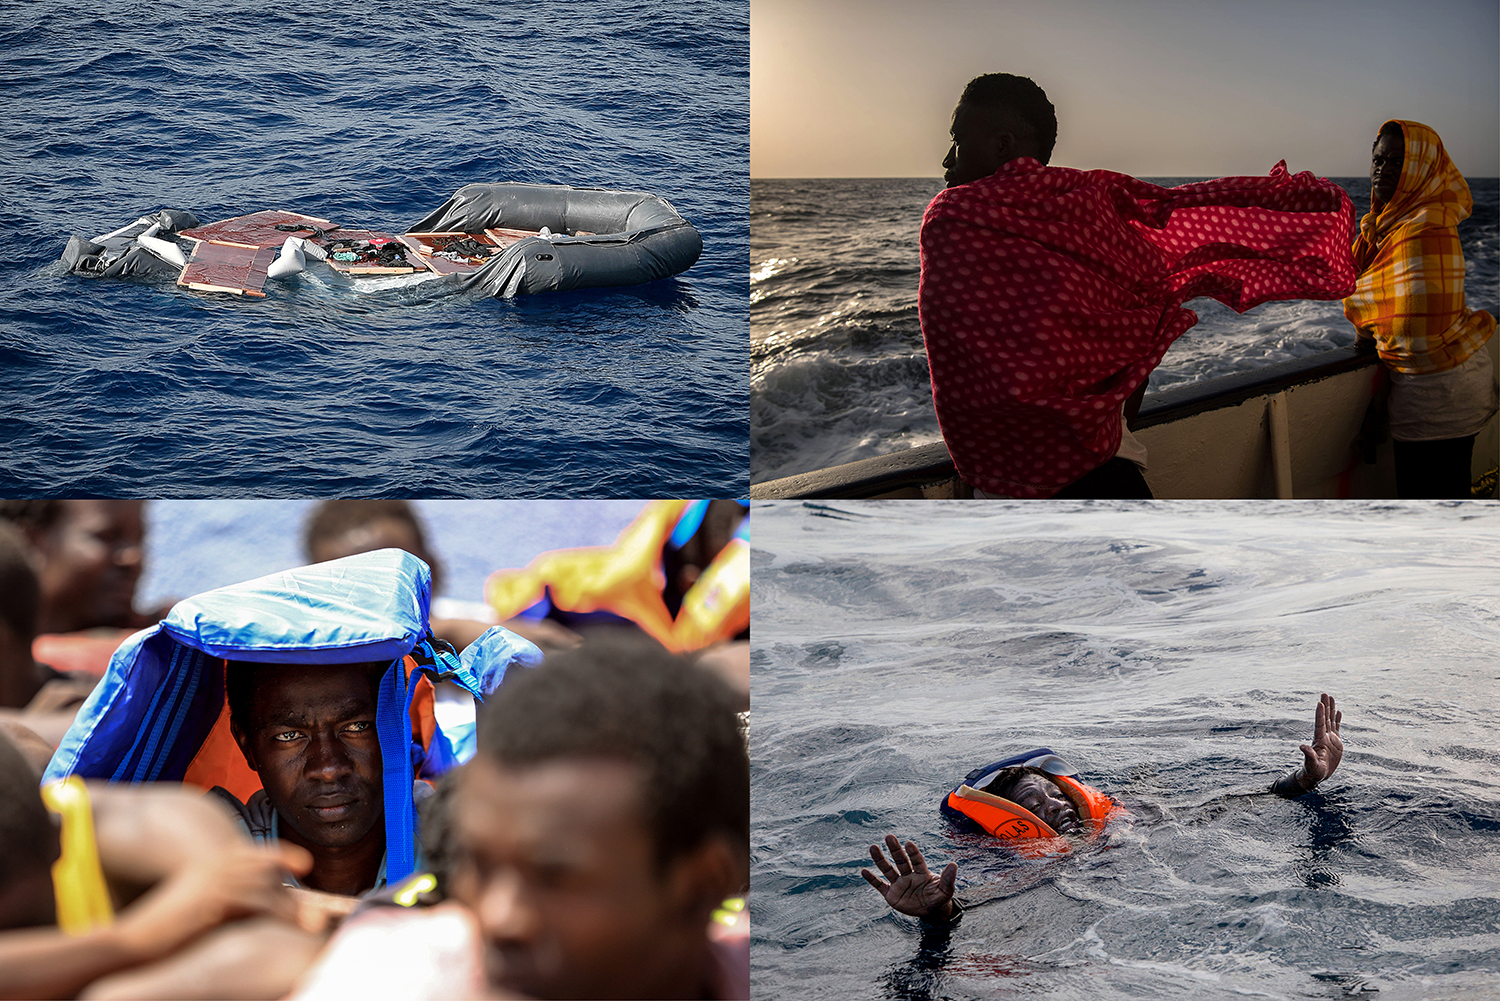 Top left: A deflated rubber boat in seen in the Mediterranean Sea after the Libyan coast guard intercepted migrants aboard on May 8, 2018. Top right: Migrants from Togo aboard a Spanish nongovernmental organization's vessel after being rescued off the Libyan coast on Feb. 19, 2017. Bottom left: A migrant waits at a detention facility in Tajoura on Aug. 6, 2017, after he was retrieved at sea by the Libyan coast guard during an attempt to reach Europe. Bottom right: A migrant tries to board a German NGO vessel in the Mediterranean Sea after his boat capsized on Nov. 6, 2017. The Libyan coast guard's violent behavior was blamed for the death of five people in the shipwreck.